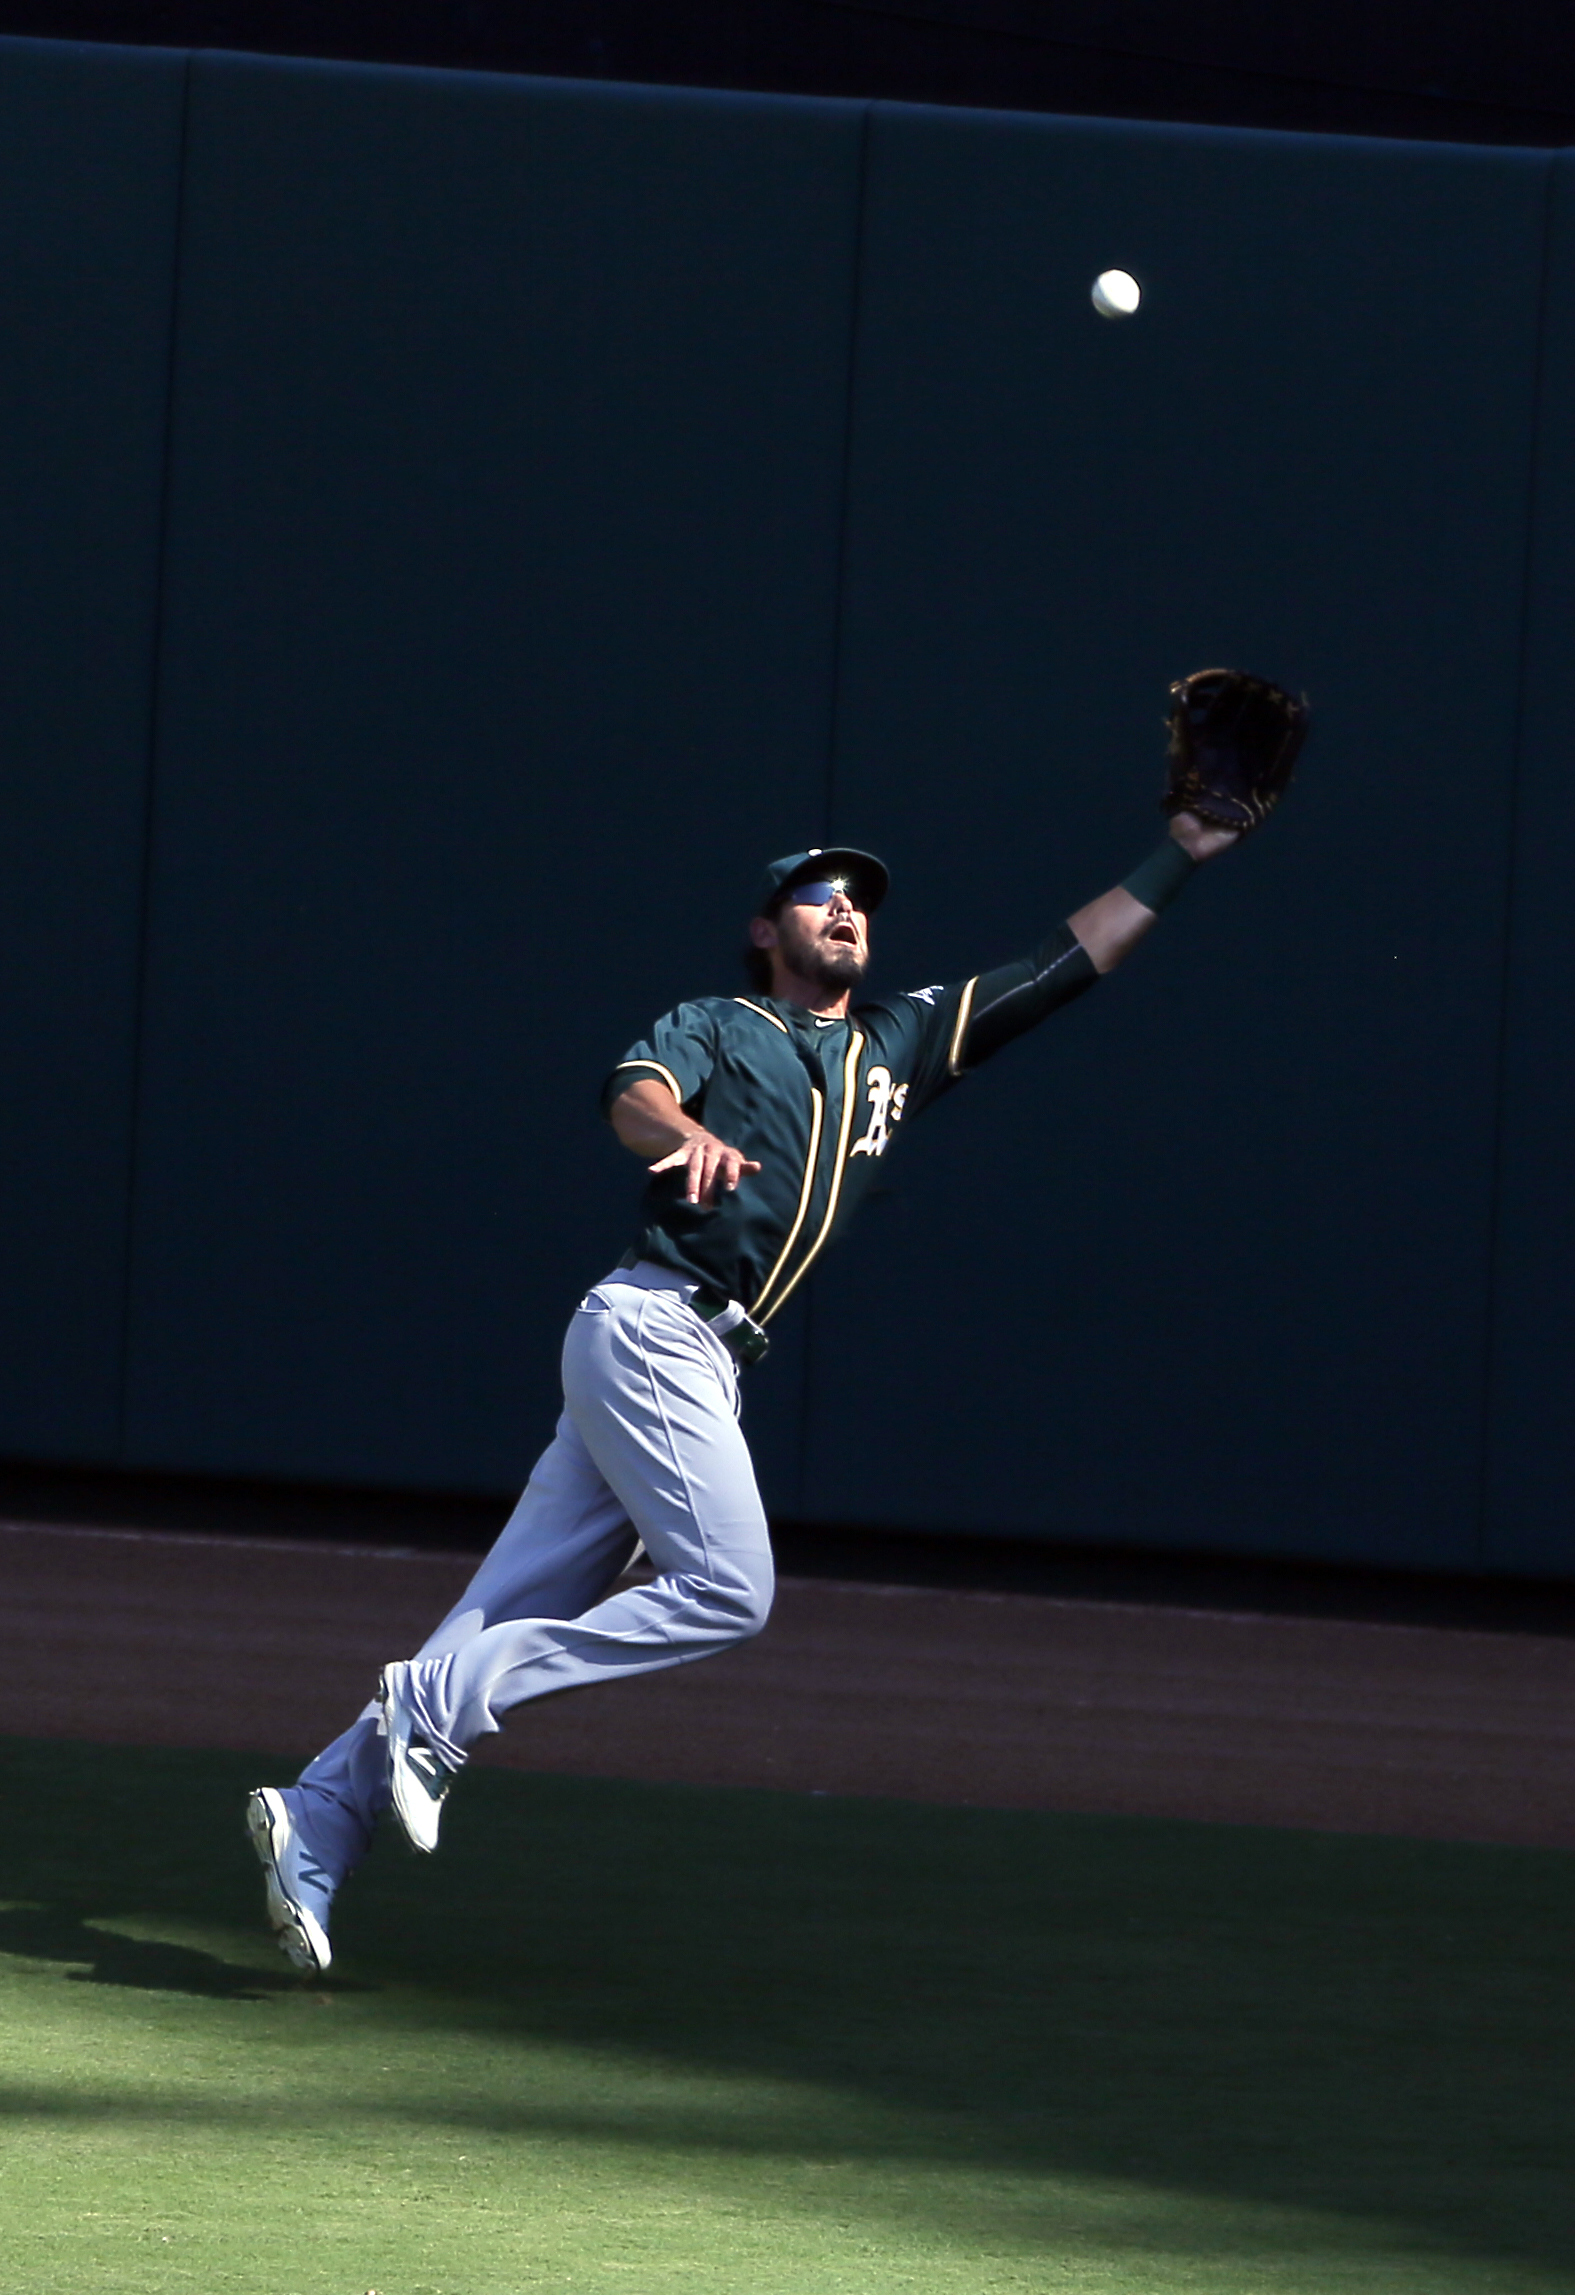 Oakland Athletics right fielder Brett Eibner reaches up before laying out to catch a fly out by Texas Rangers' Adrian Beltre in the fifth inning of a baseball game, Sunday, Sept. 18, 2016, in Arlington, Texas. (AP Photo/Tony Gutierrez)